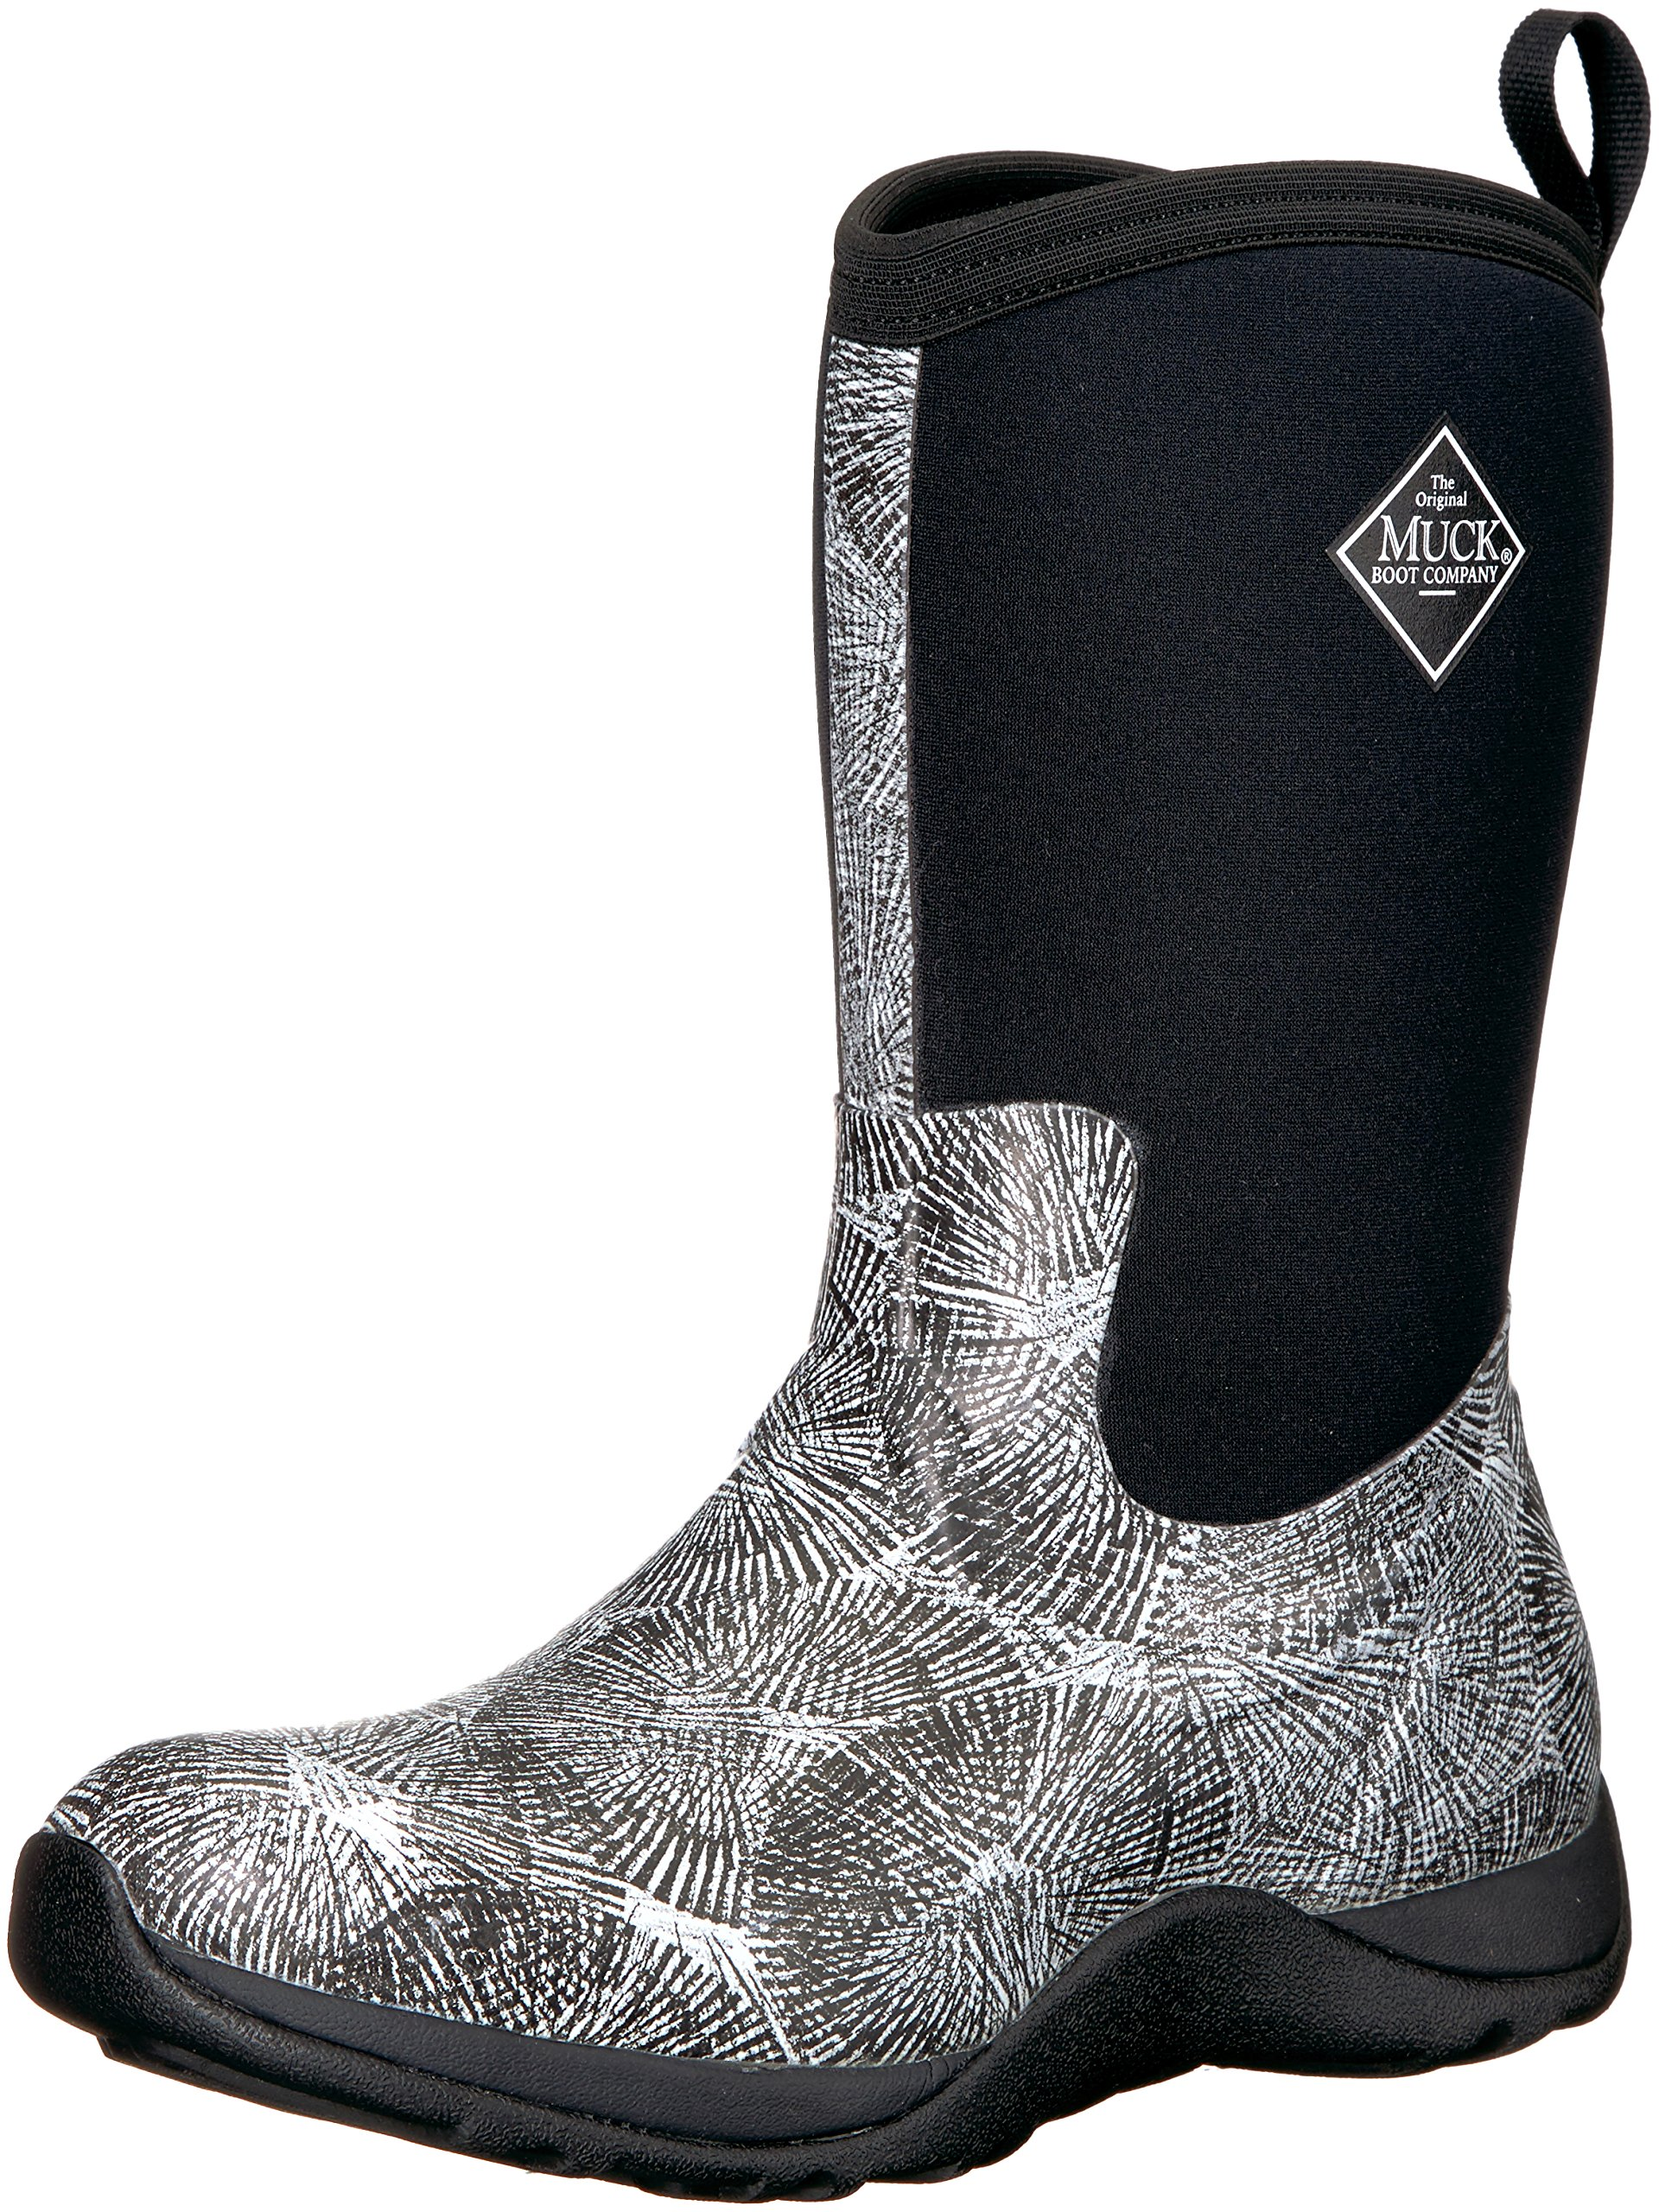 Muck Boot Women's Arctic Weekend Print Work Boot, Black, White/Spiral, 8 M US